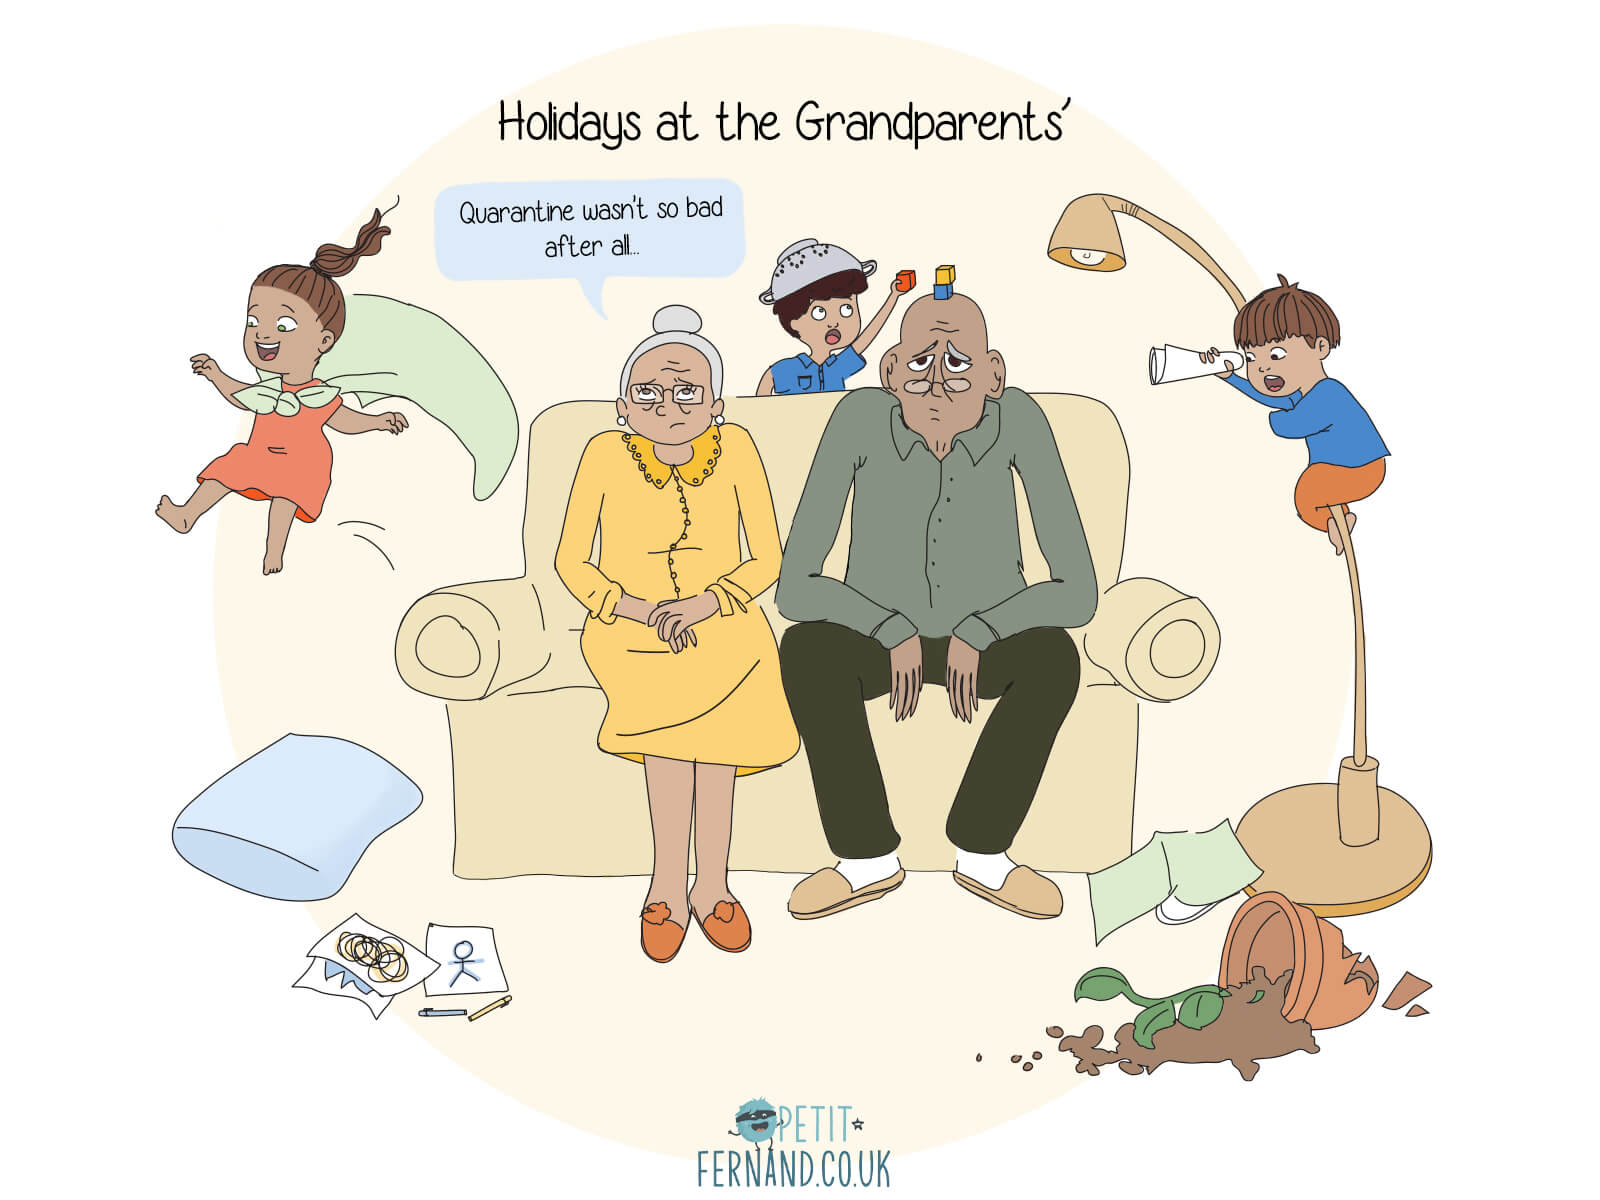 During the holidays, many of us dream of leaving the children at their grandparents' house… much to their dismay!